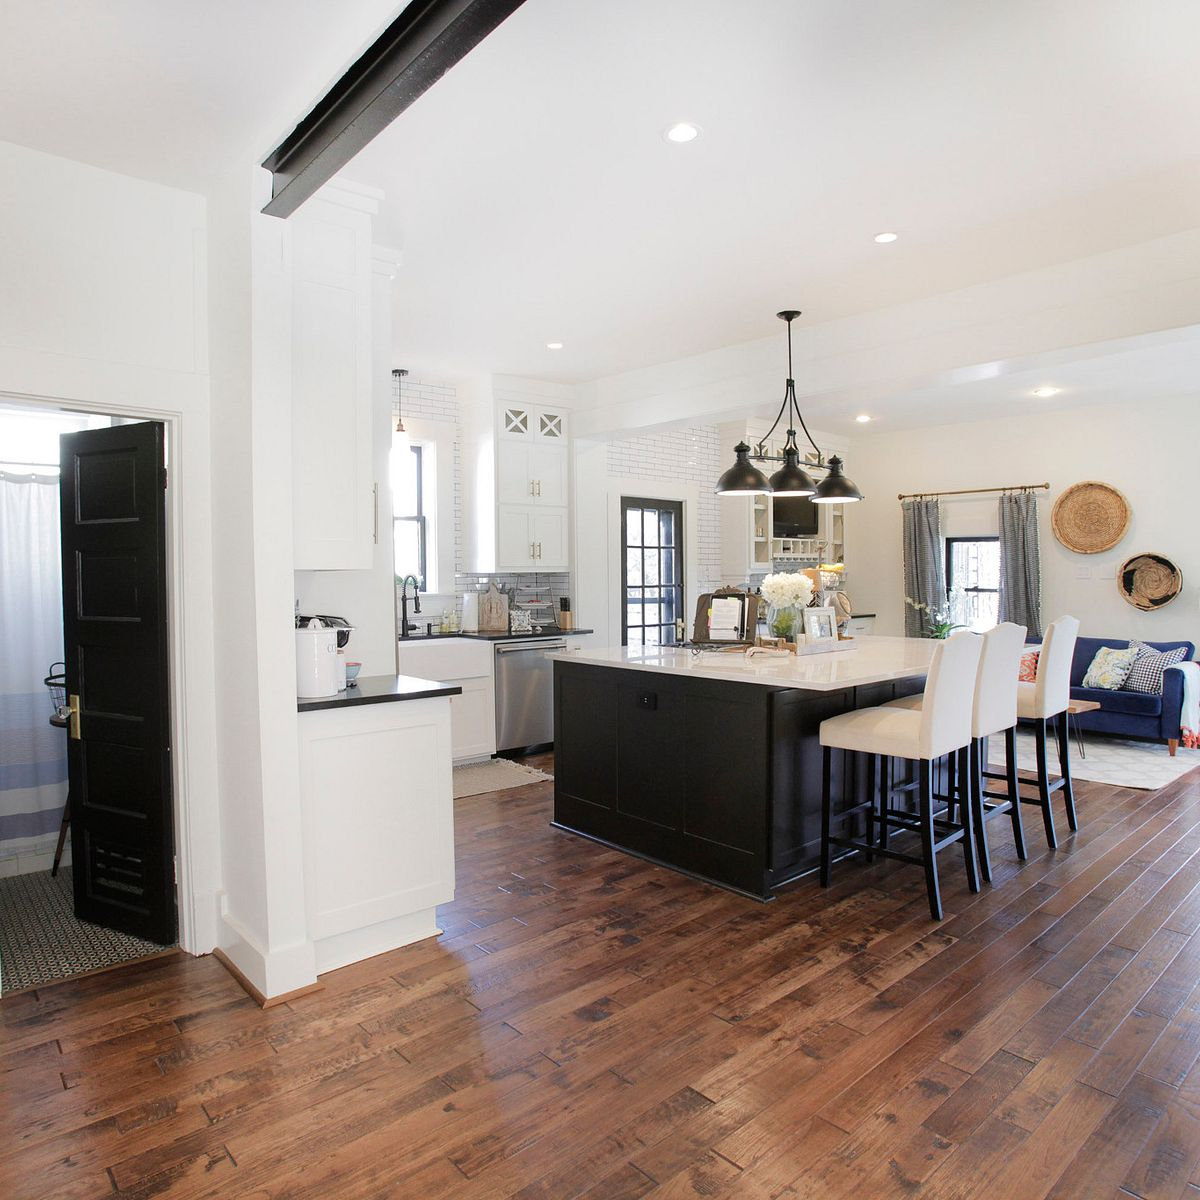 Shaw Floors, How To Pick Flooring Color For Kitchen